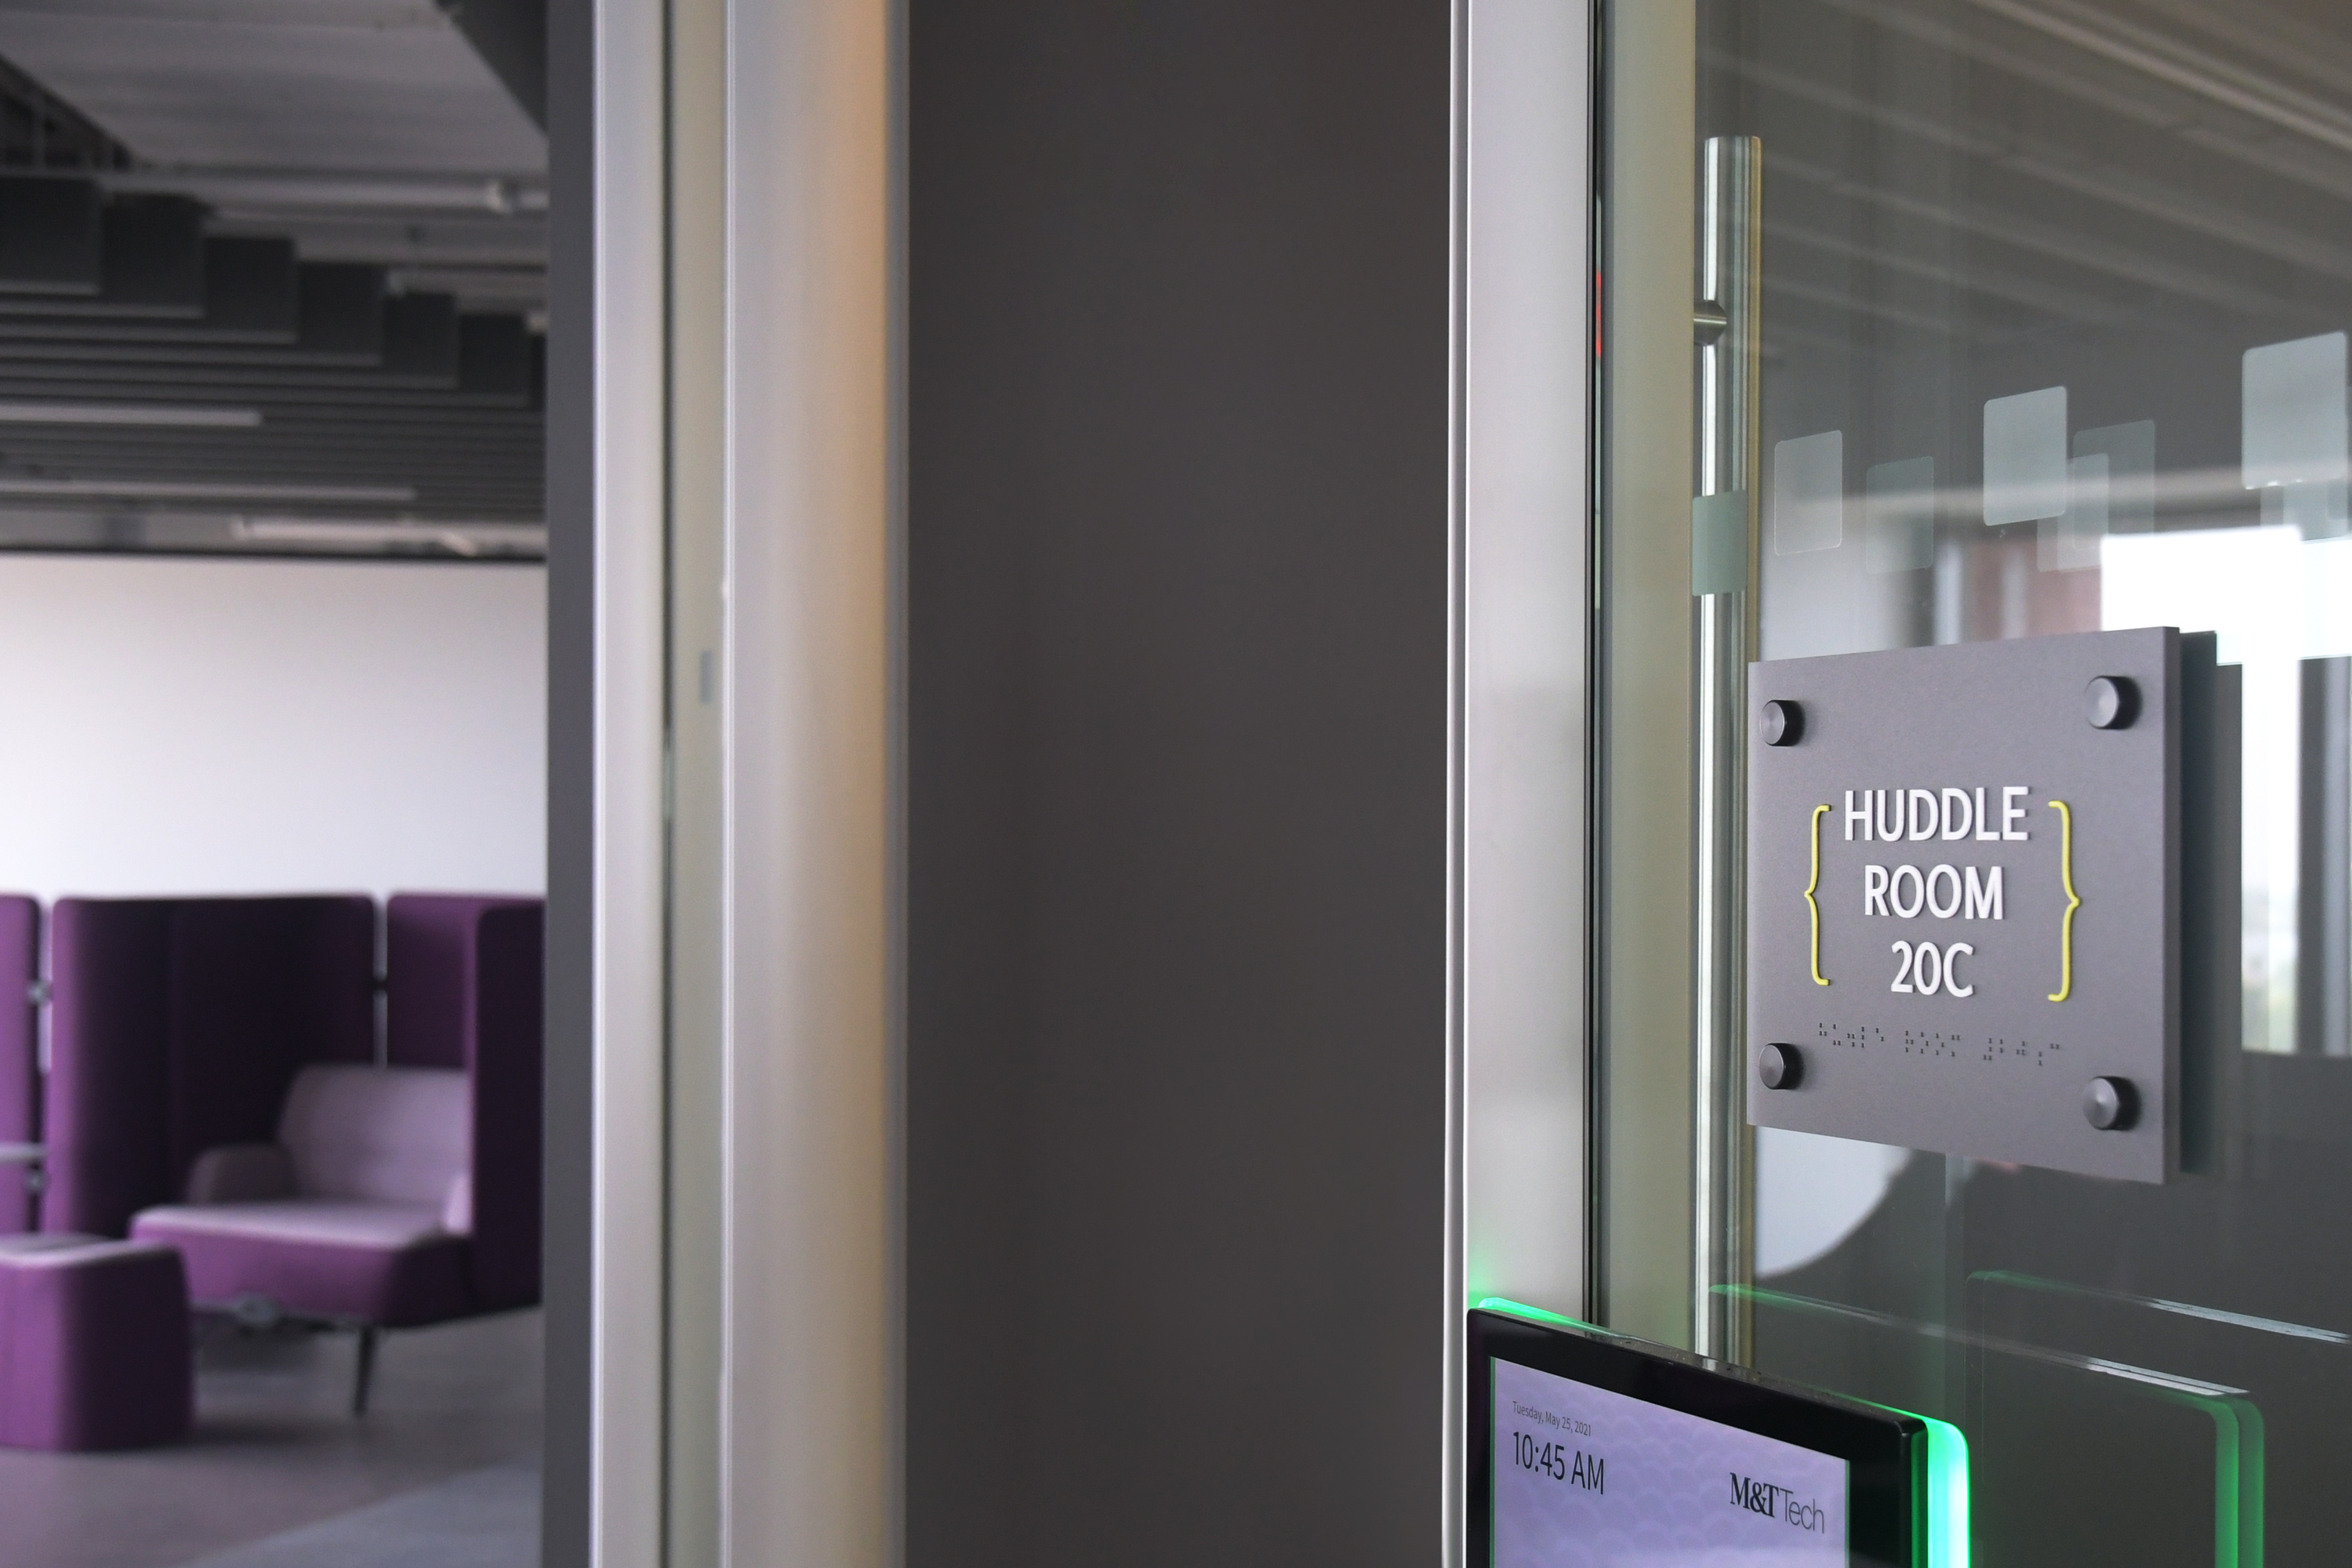 Photo of lounge area and room signage with Ethos lettering